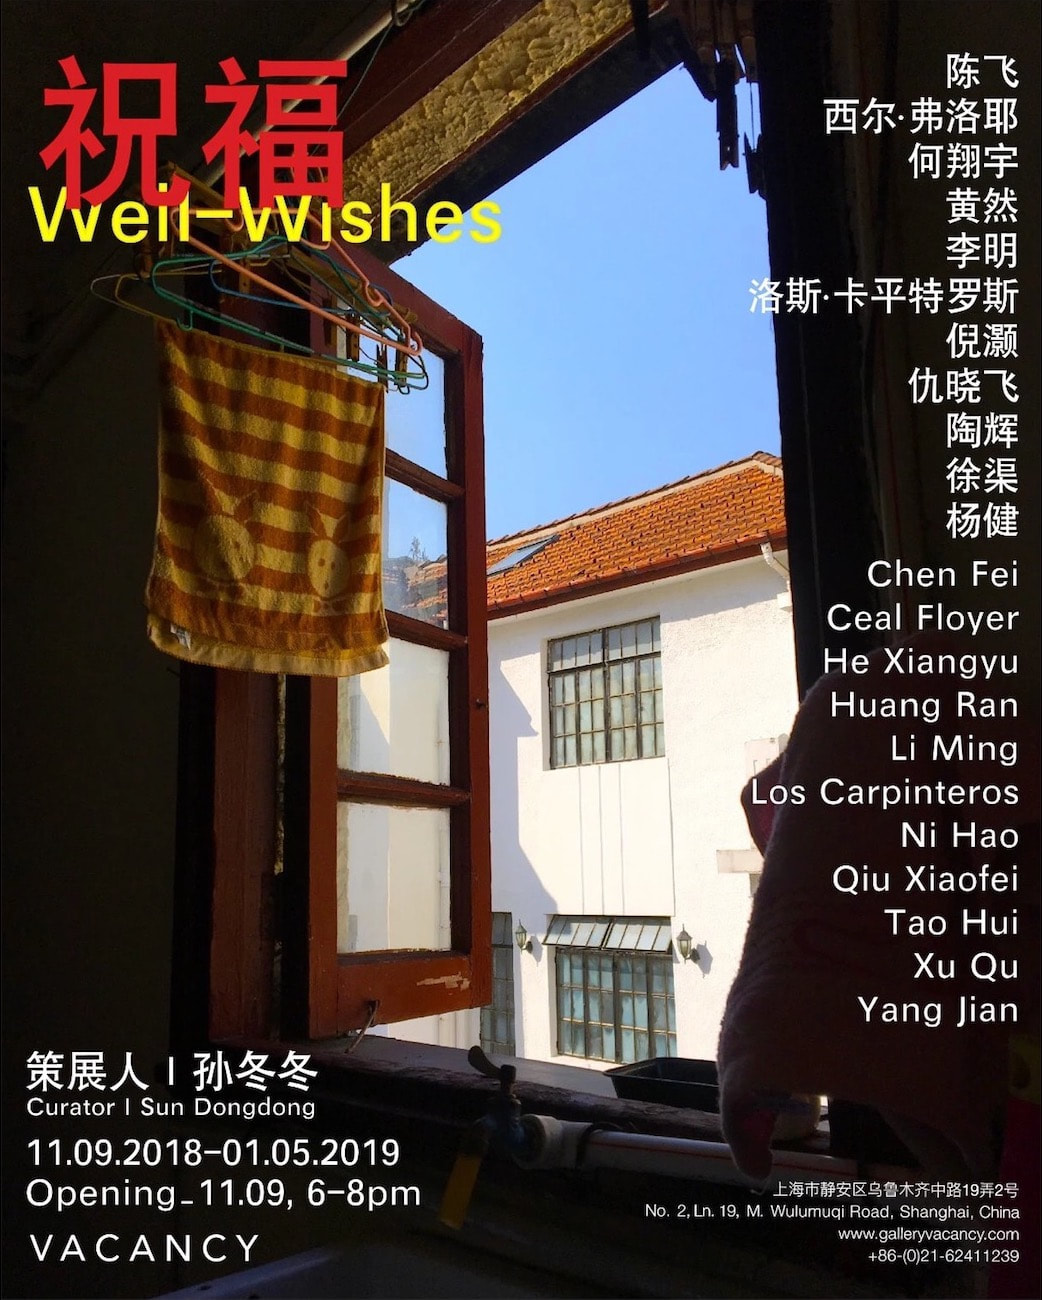 Gallery Vacancy exhibition, November 2018, Ni Hao